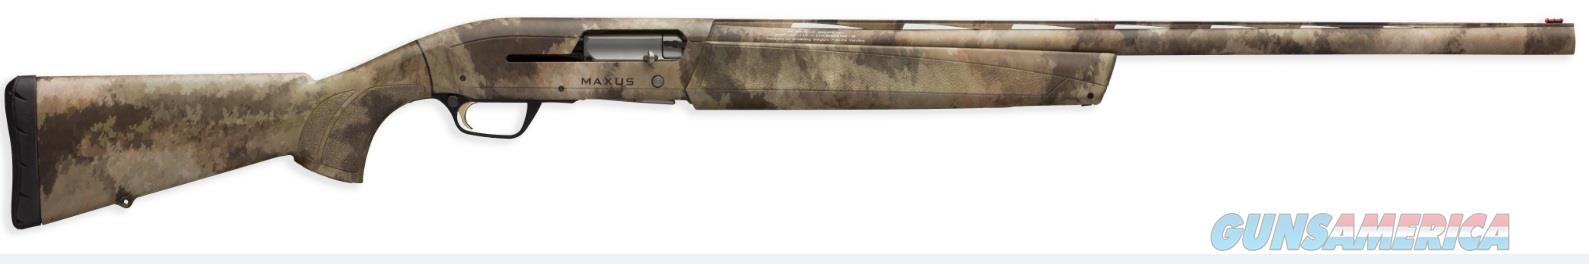 "BROWNING 011669205 MAXUS SEMI-AUTOMATIC 12GA 28"" 3.5"" CAMOUFLAGE SYNTHETIC STK CAMOUFLAGE ALUMINUM ALLOY RCVR 011669205  Guns > Shotguns > Browning Shotguns > Autoloaders > Hunting"